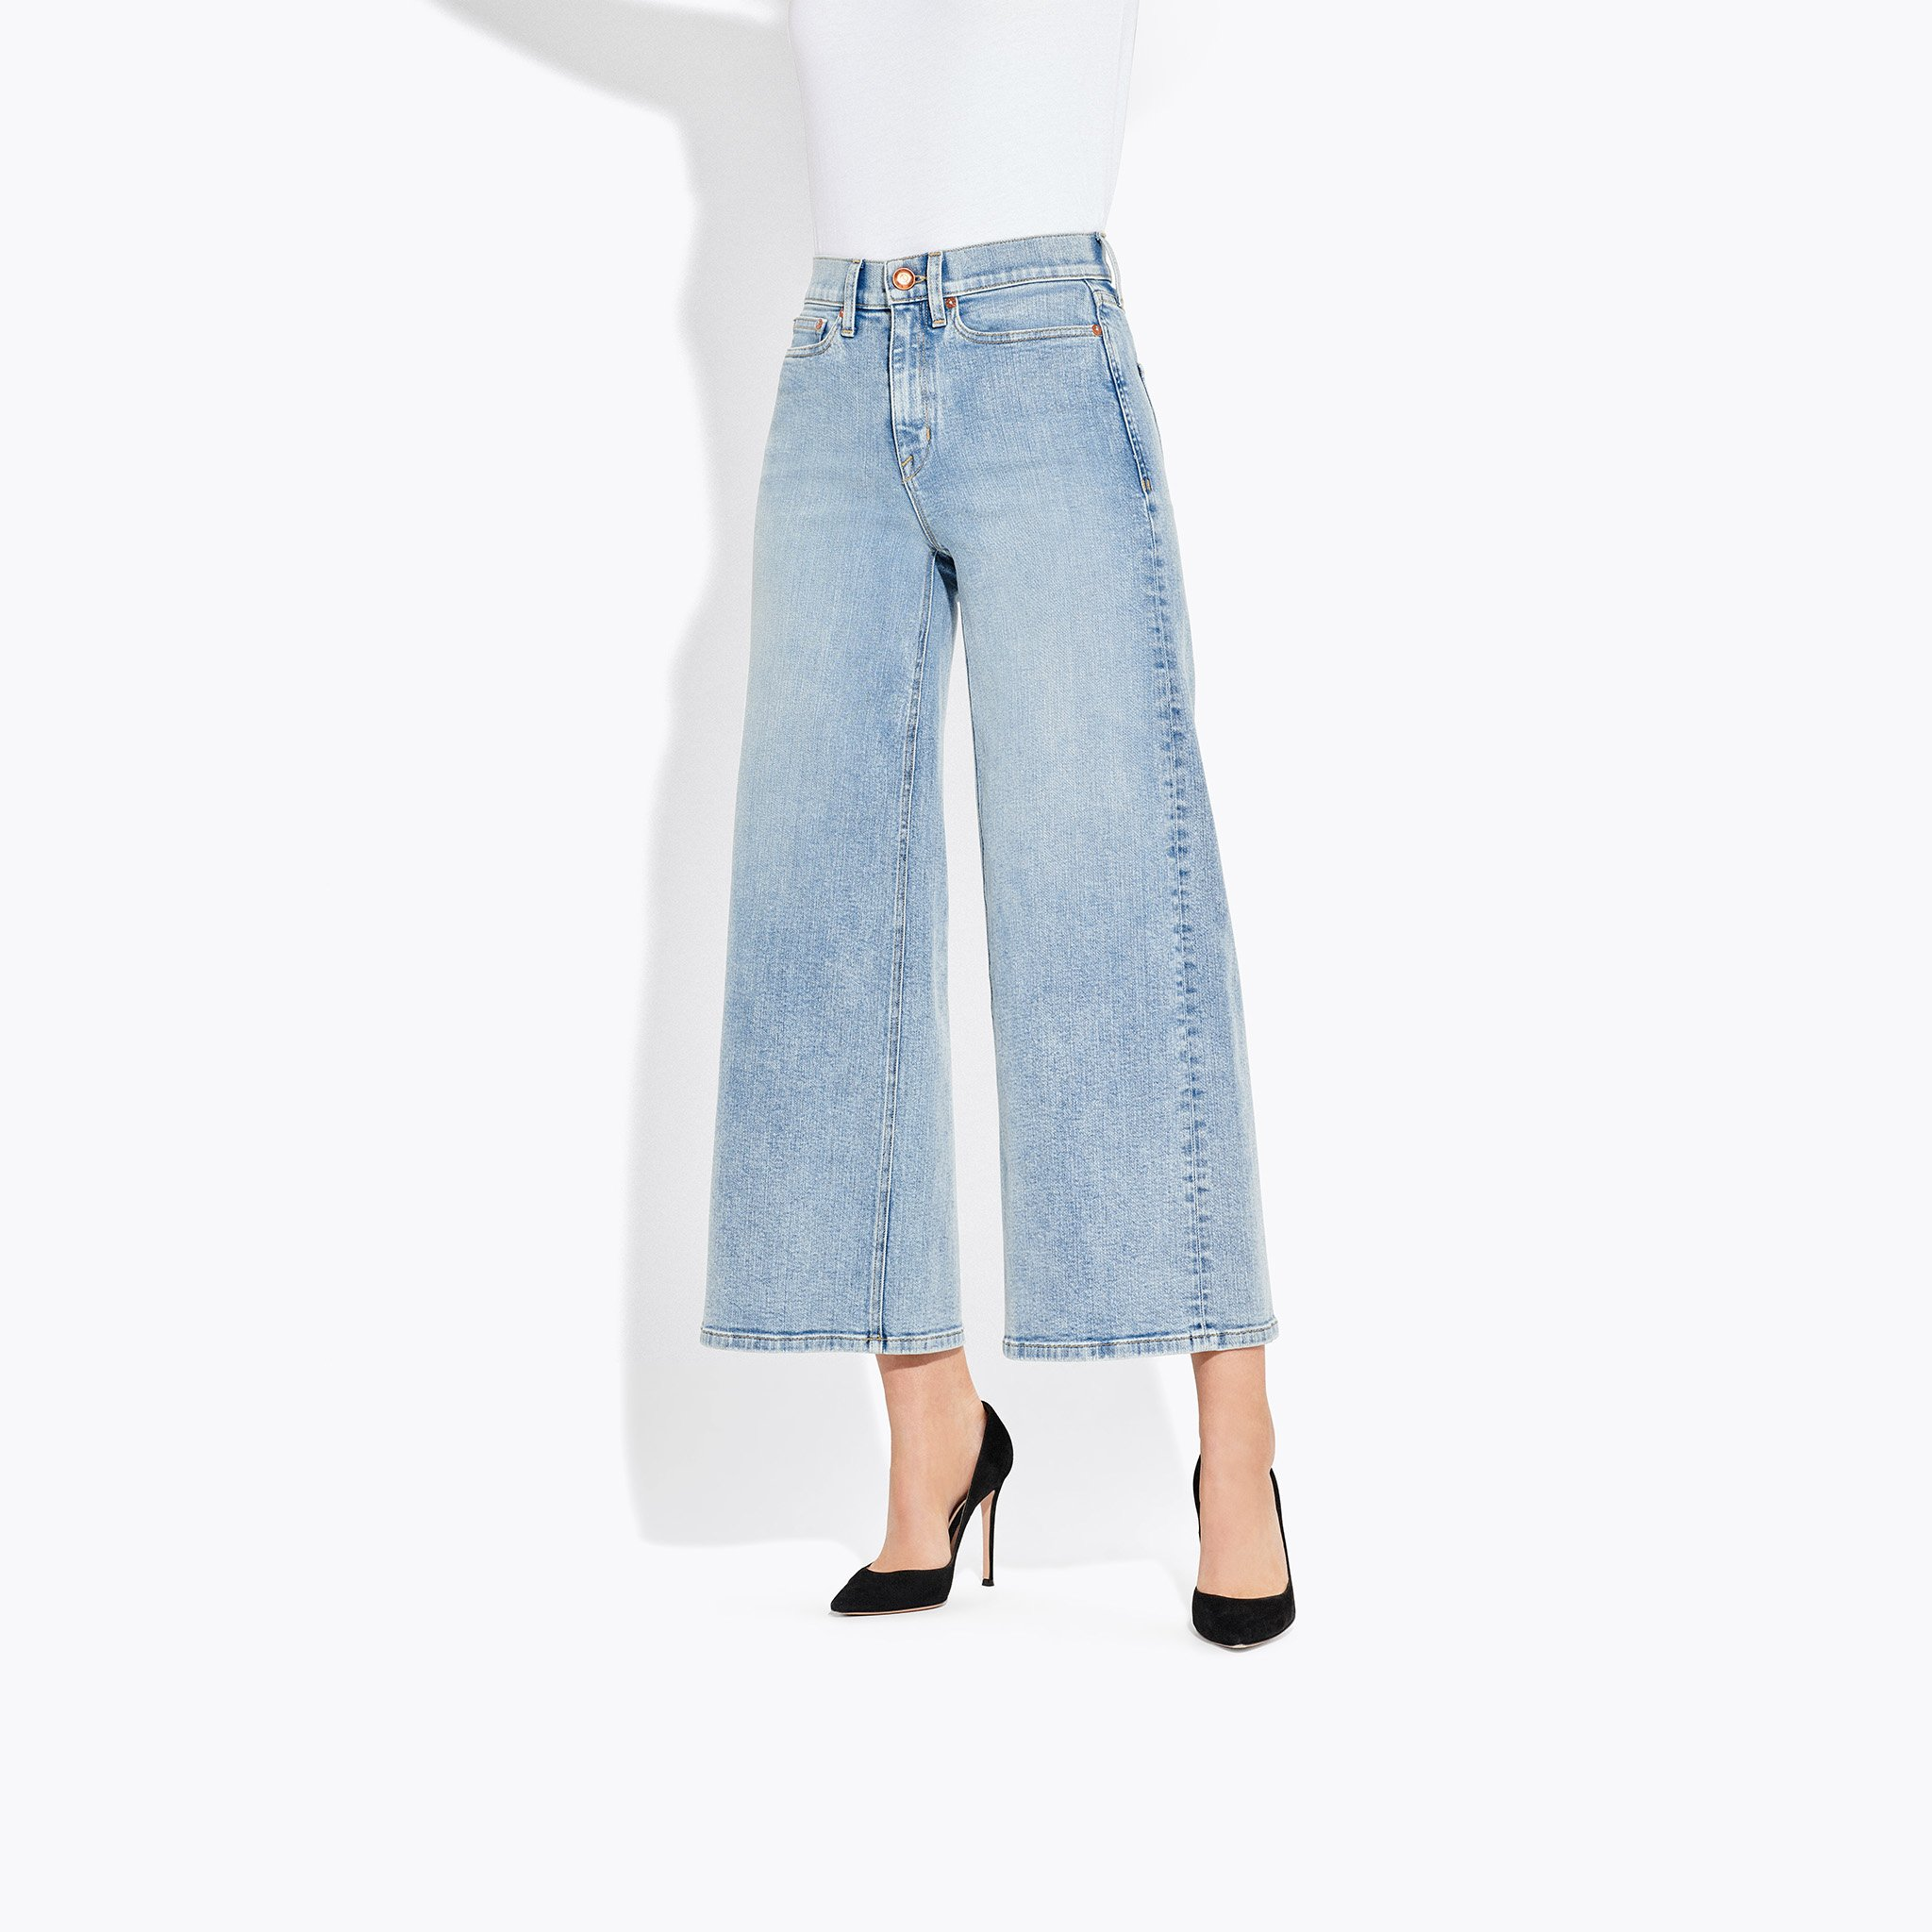 AYR - The Must / $225.00If for whatever reason you HAVE to wear jeans in this heat, this is the pair. Loose all the way through the leg to allow for minimum denim contact, while still holding a dope, tailored shape.